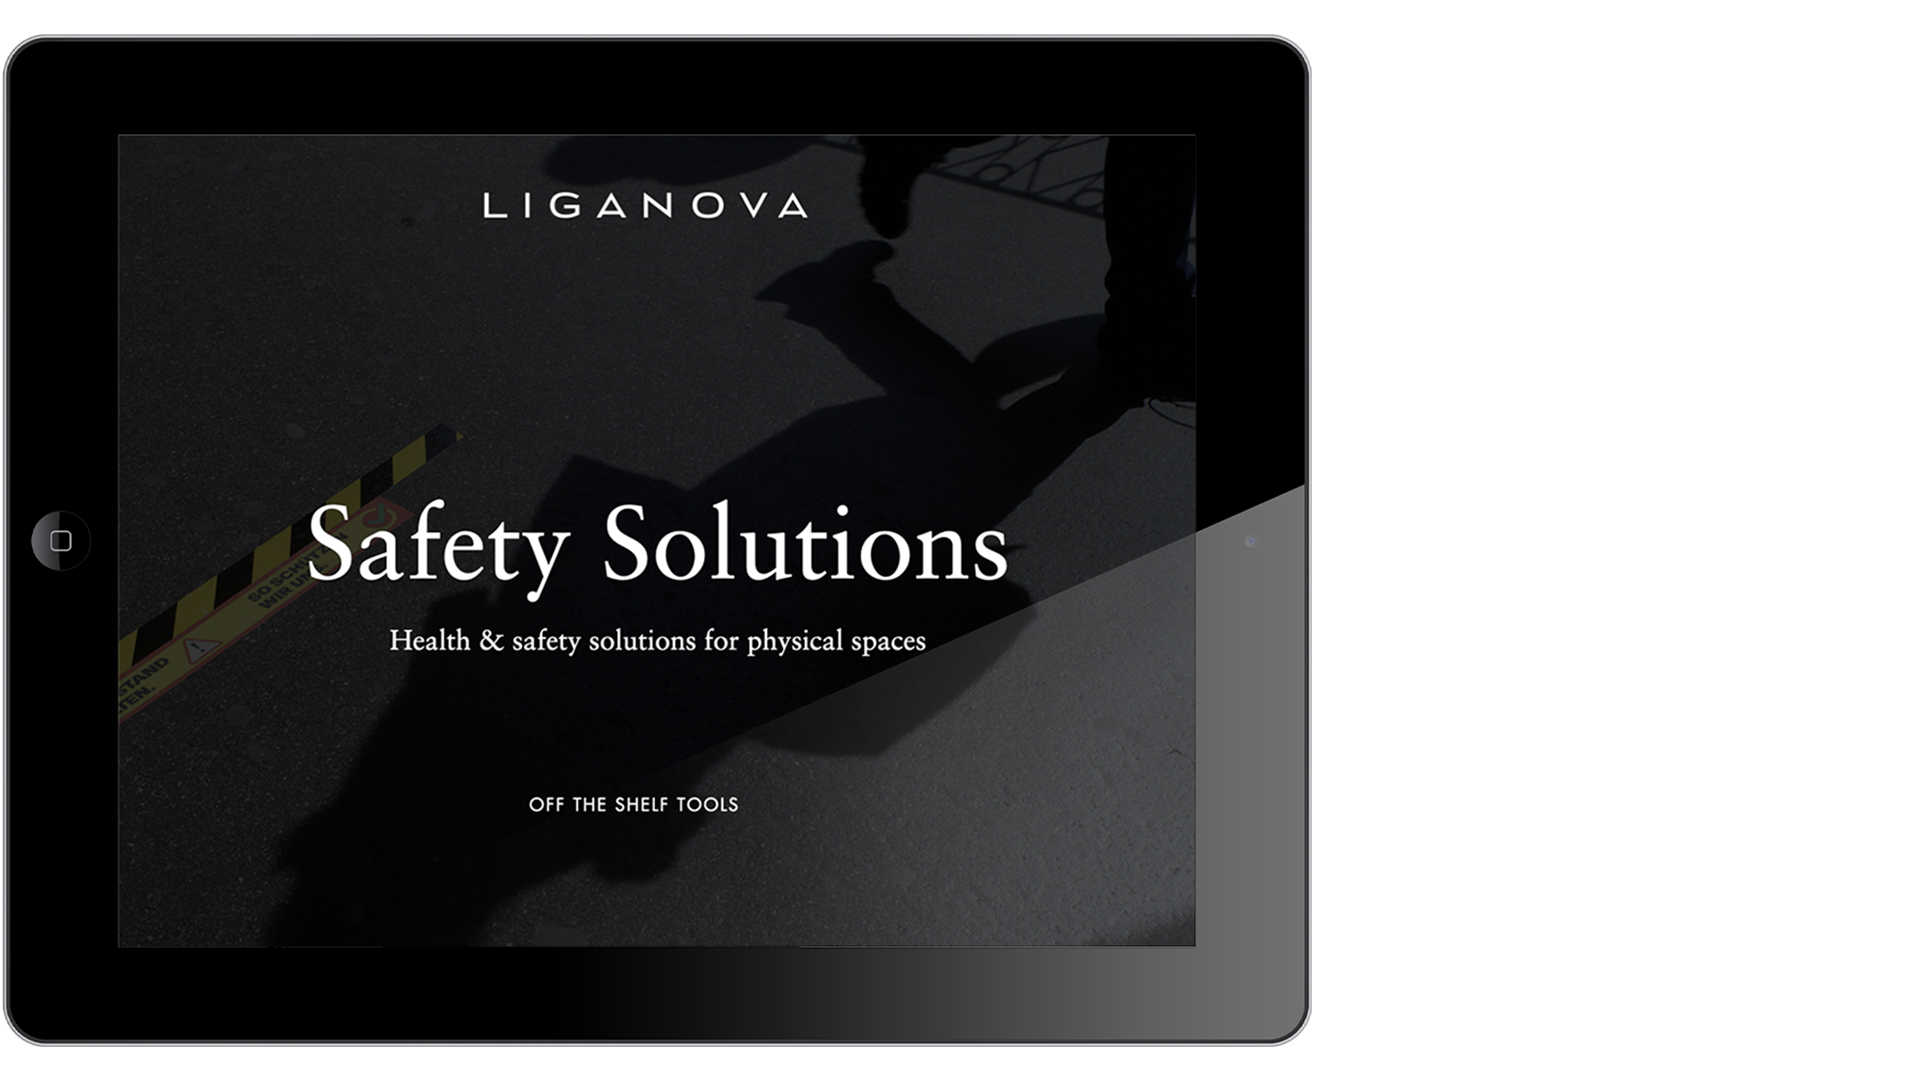 LIGANOVA | Safety Solutions | Off the shelf tools